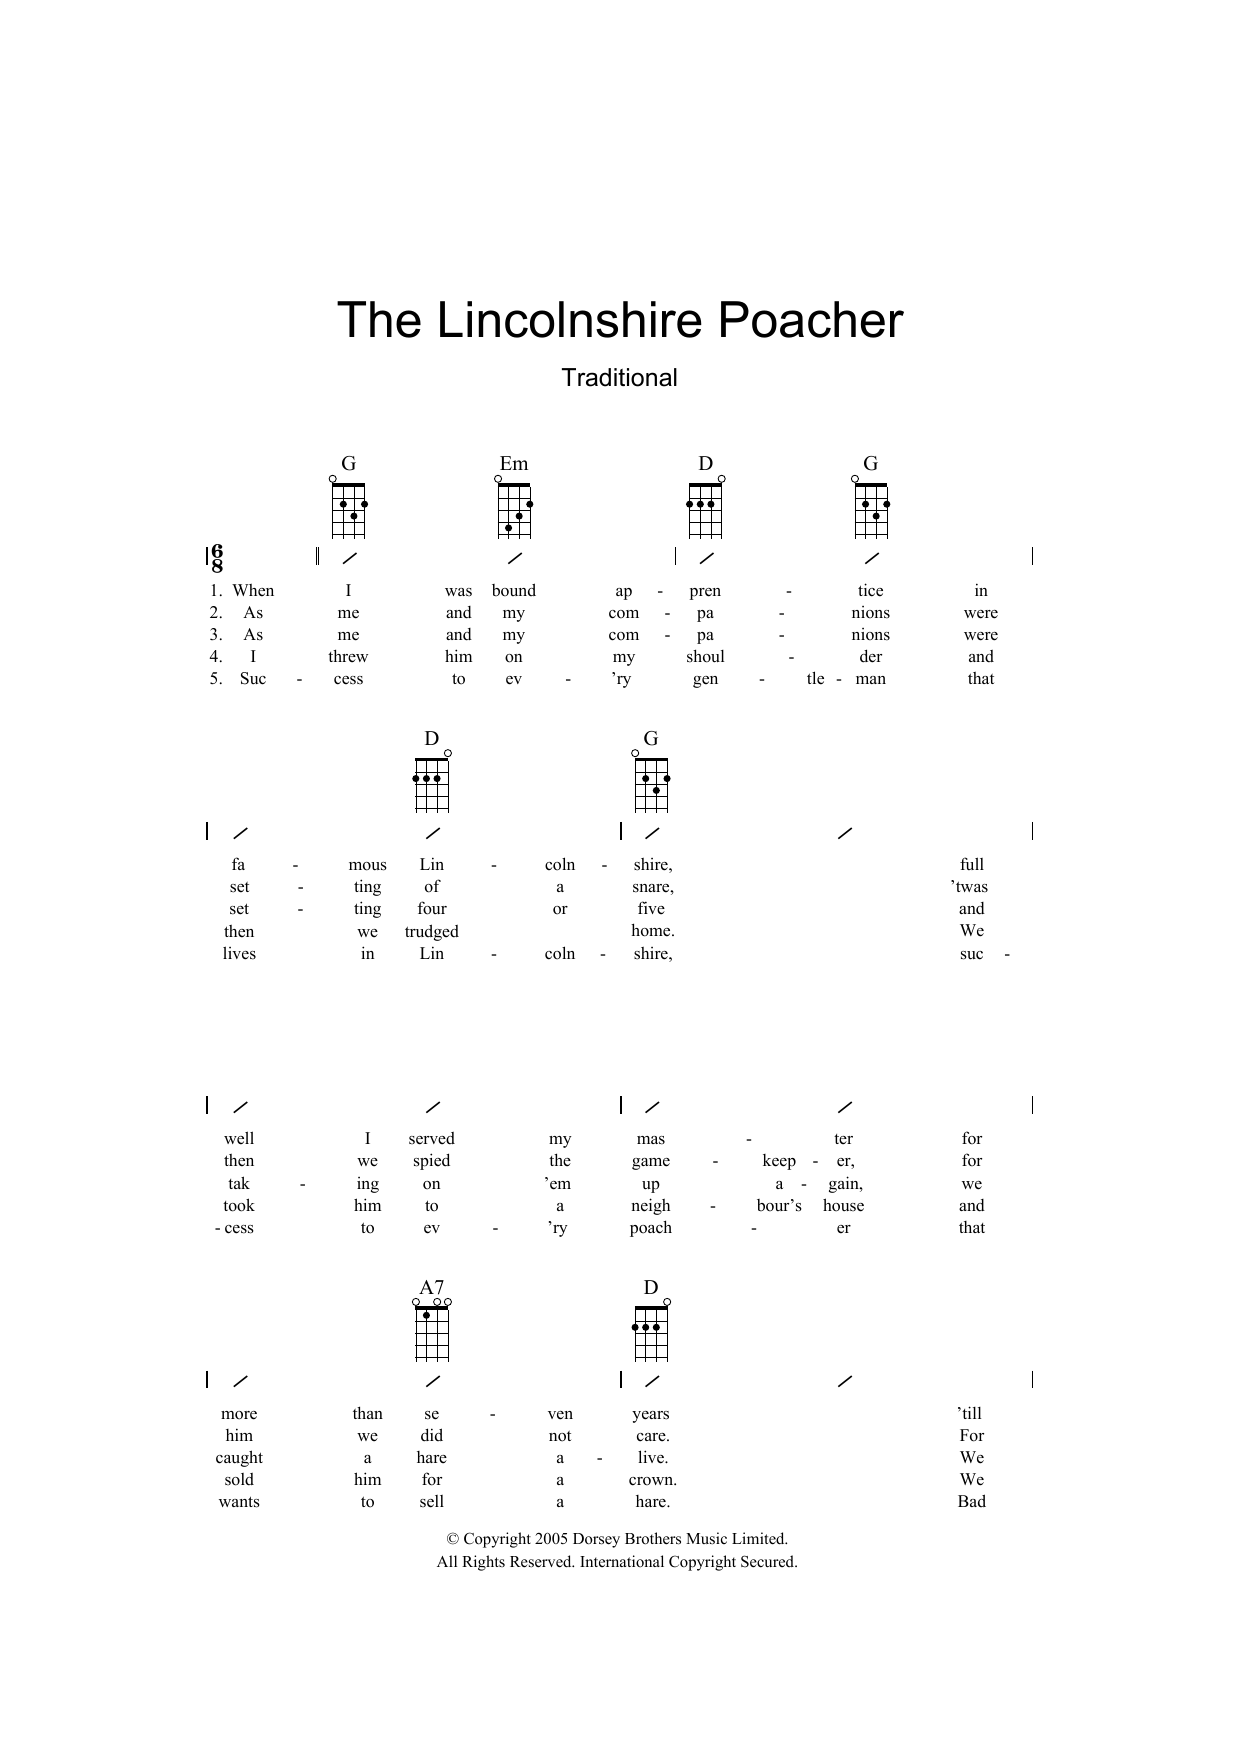 Traditional - The Lincolnshire Poacher